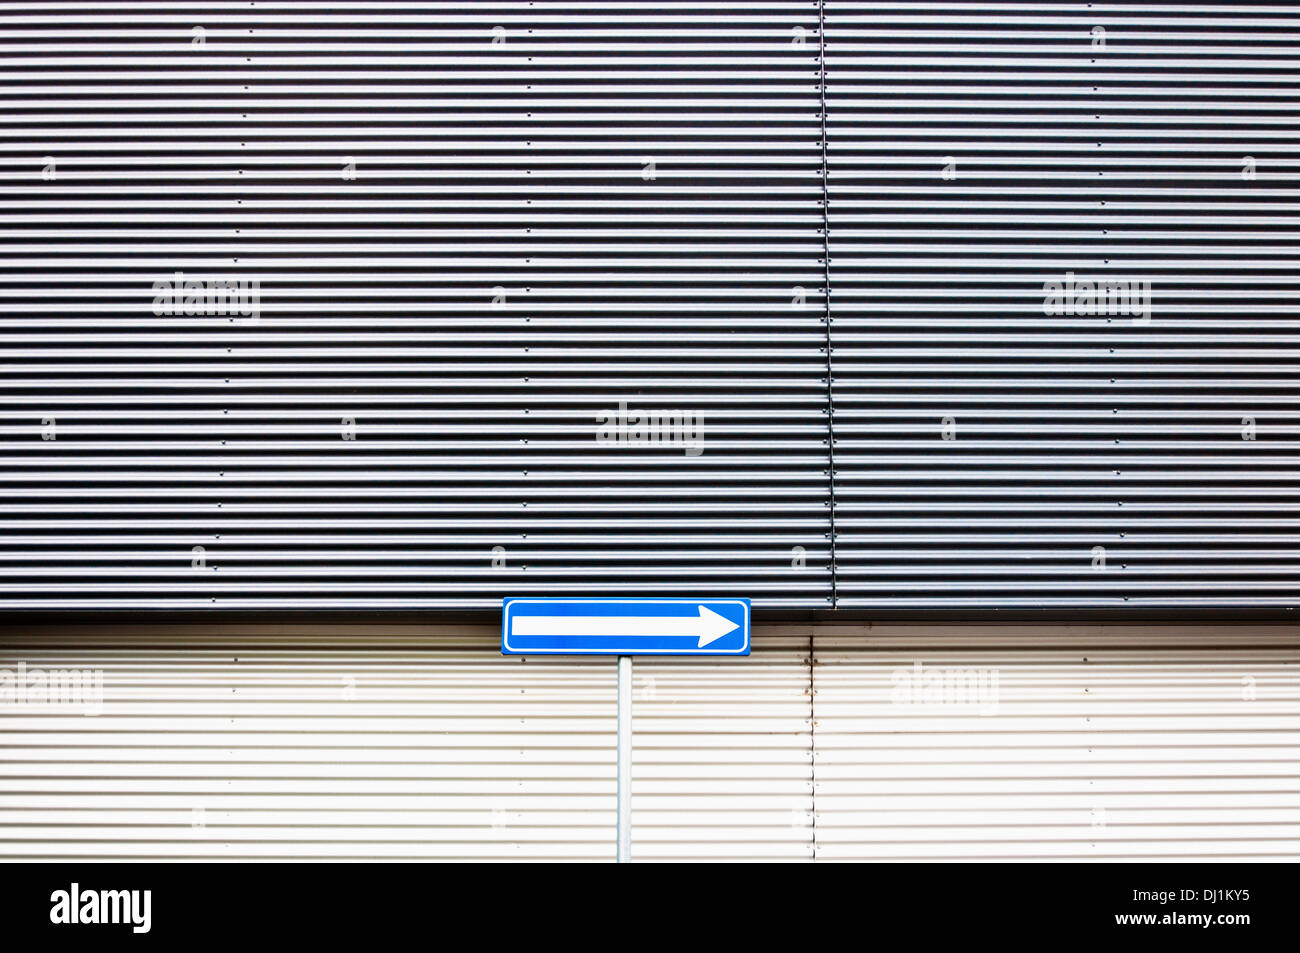 arrow road sign in front of wall of commercial building - Stock Image